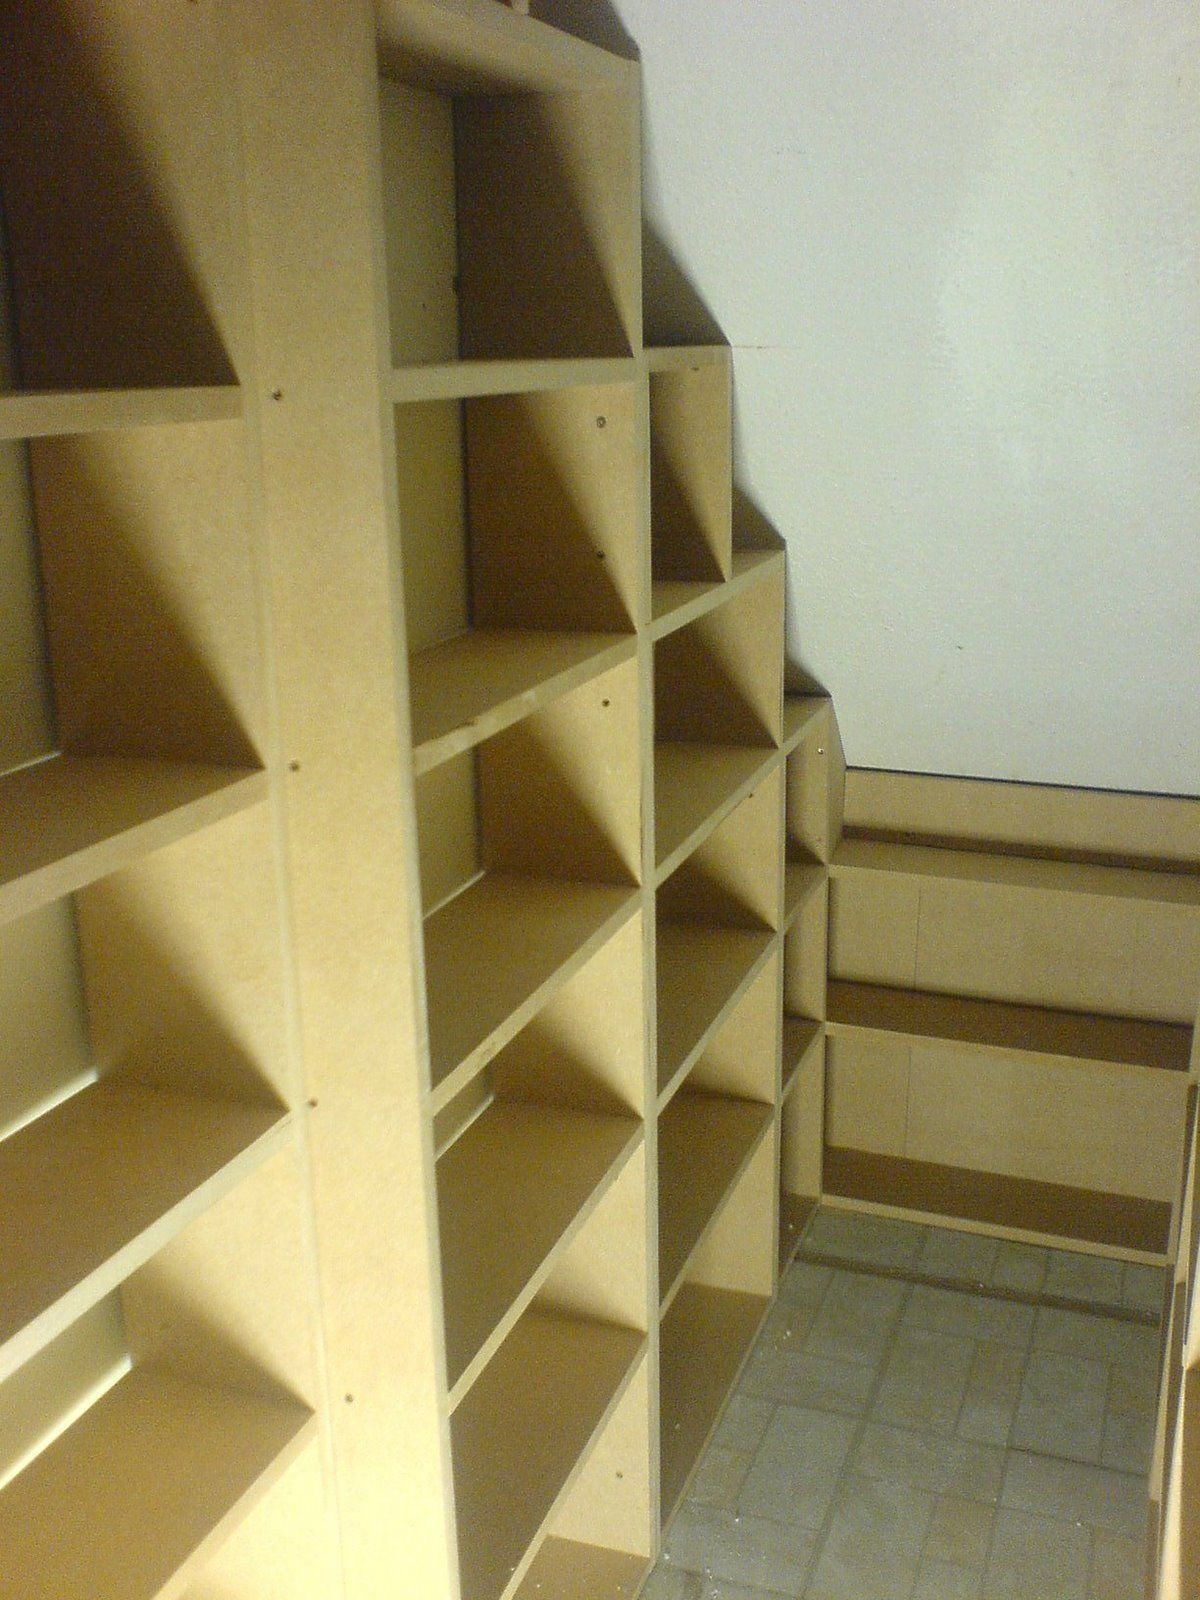 Let S Build A Cupboard Under The Stairs In 2020 Closet Under Stairs Under Stairs Cupboard Storage Under Stairs Cupboard